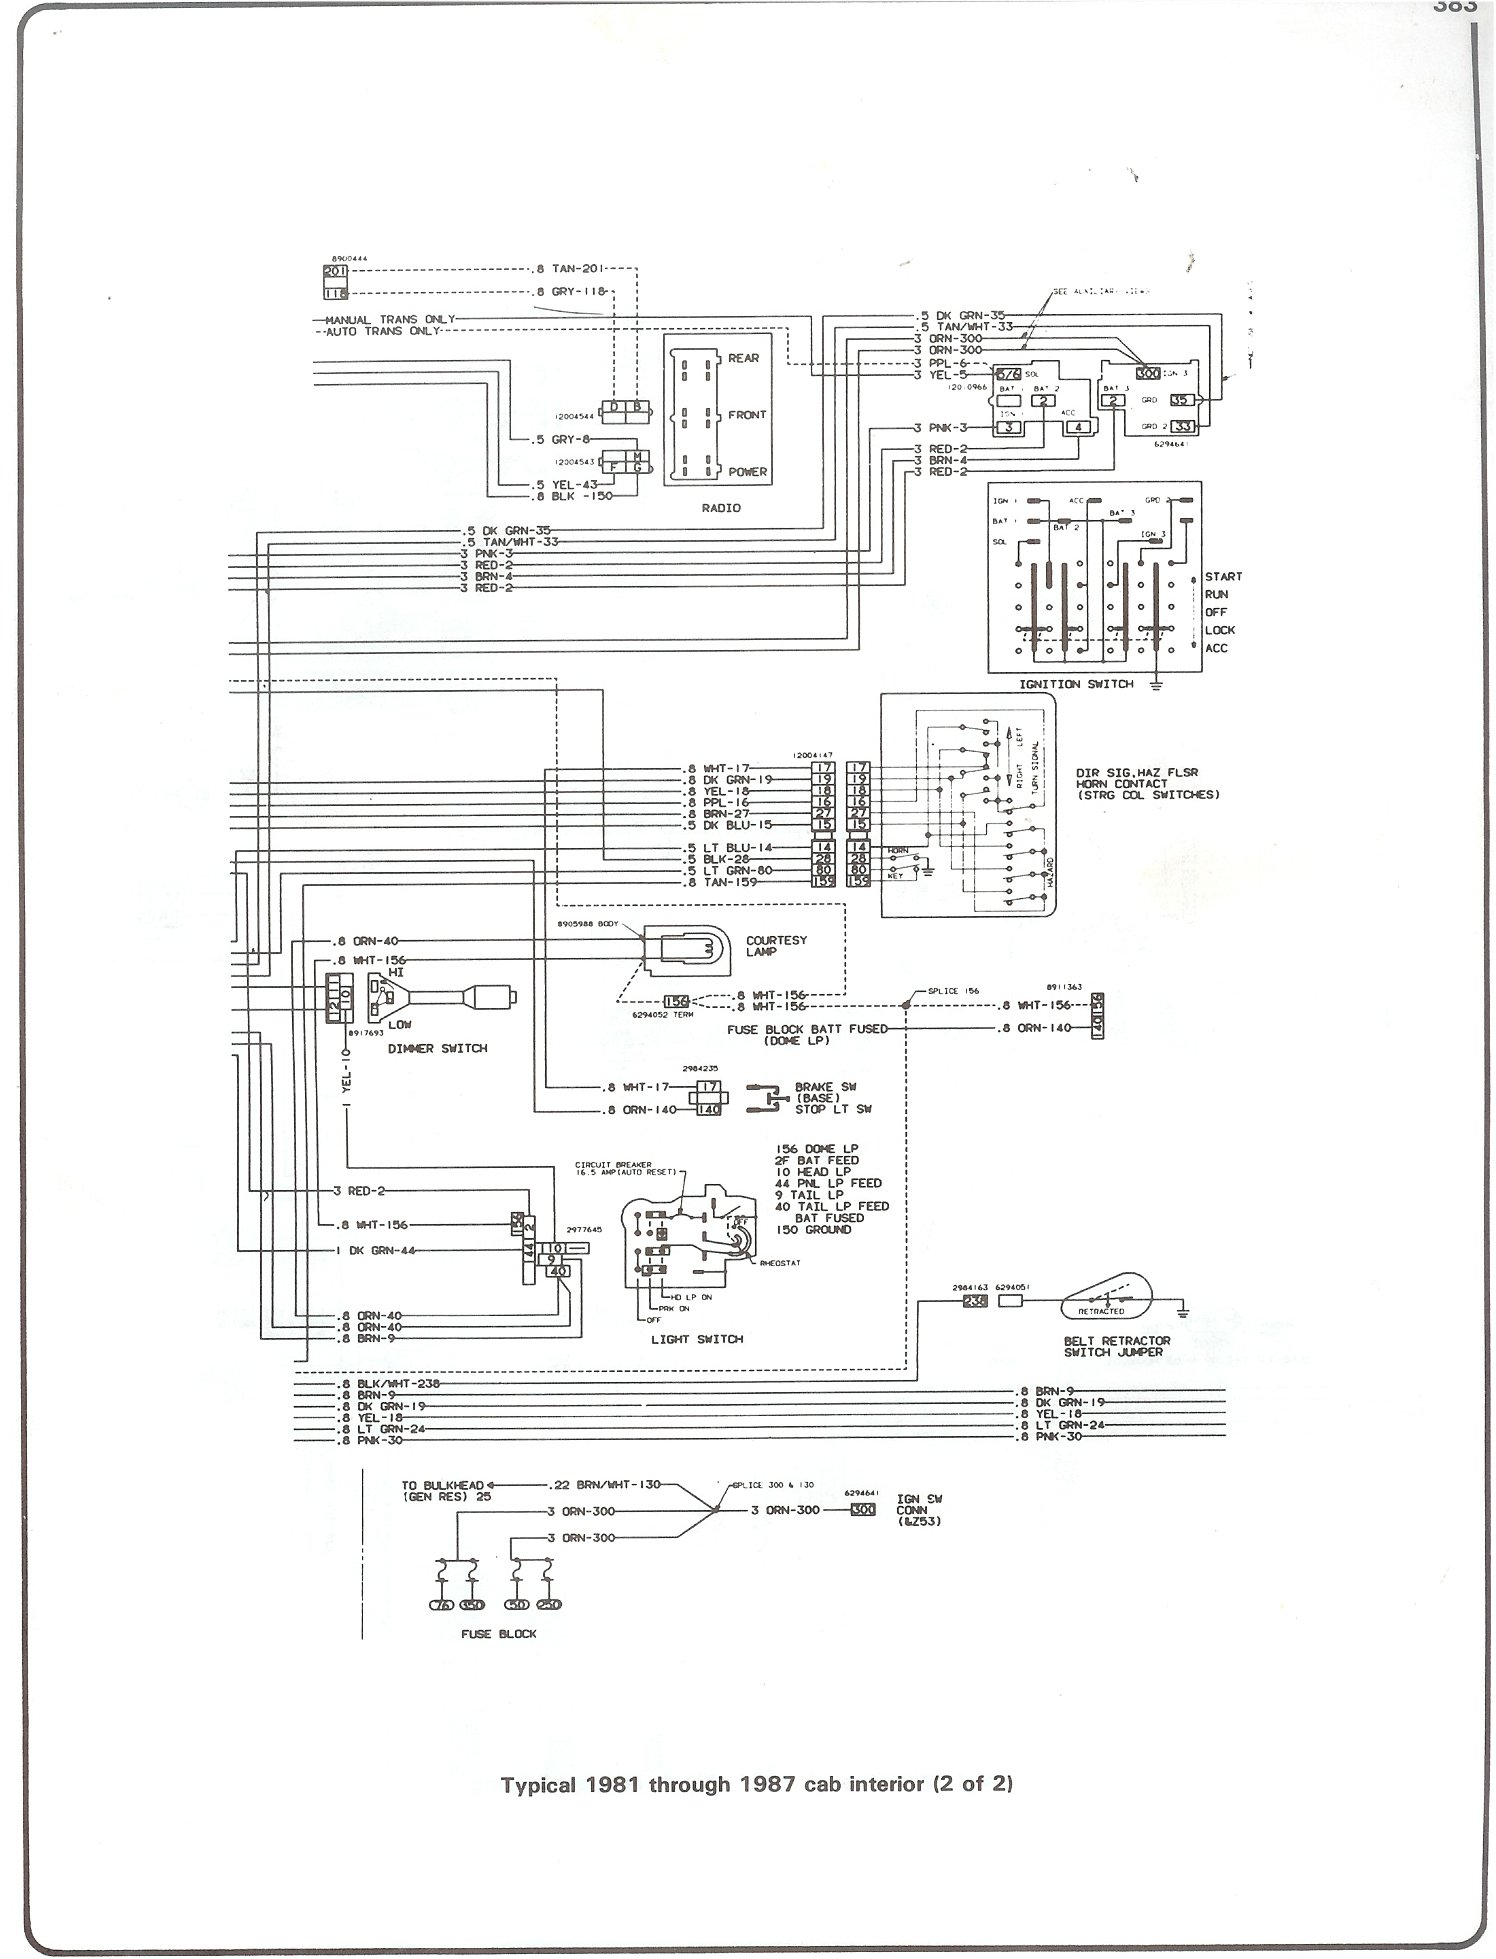 Google 1978 Chevy Starter Wiring Diagram Corvette Diagramcomplete 73 87 Diagrams